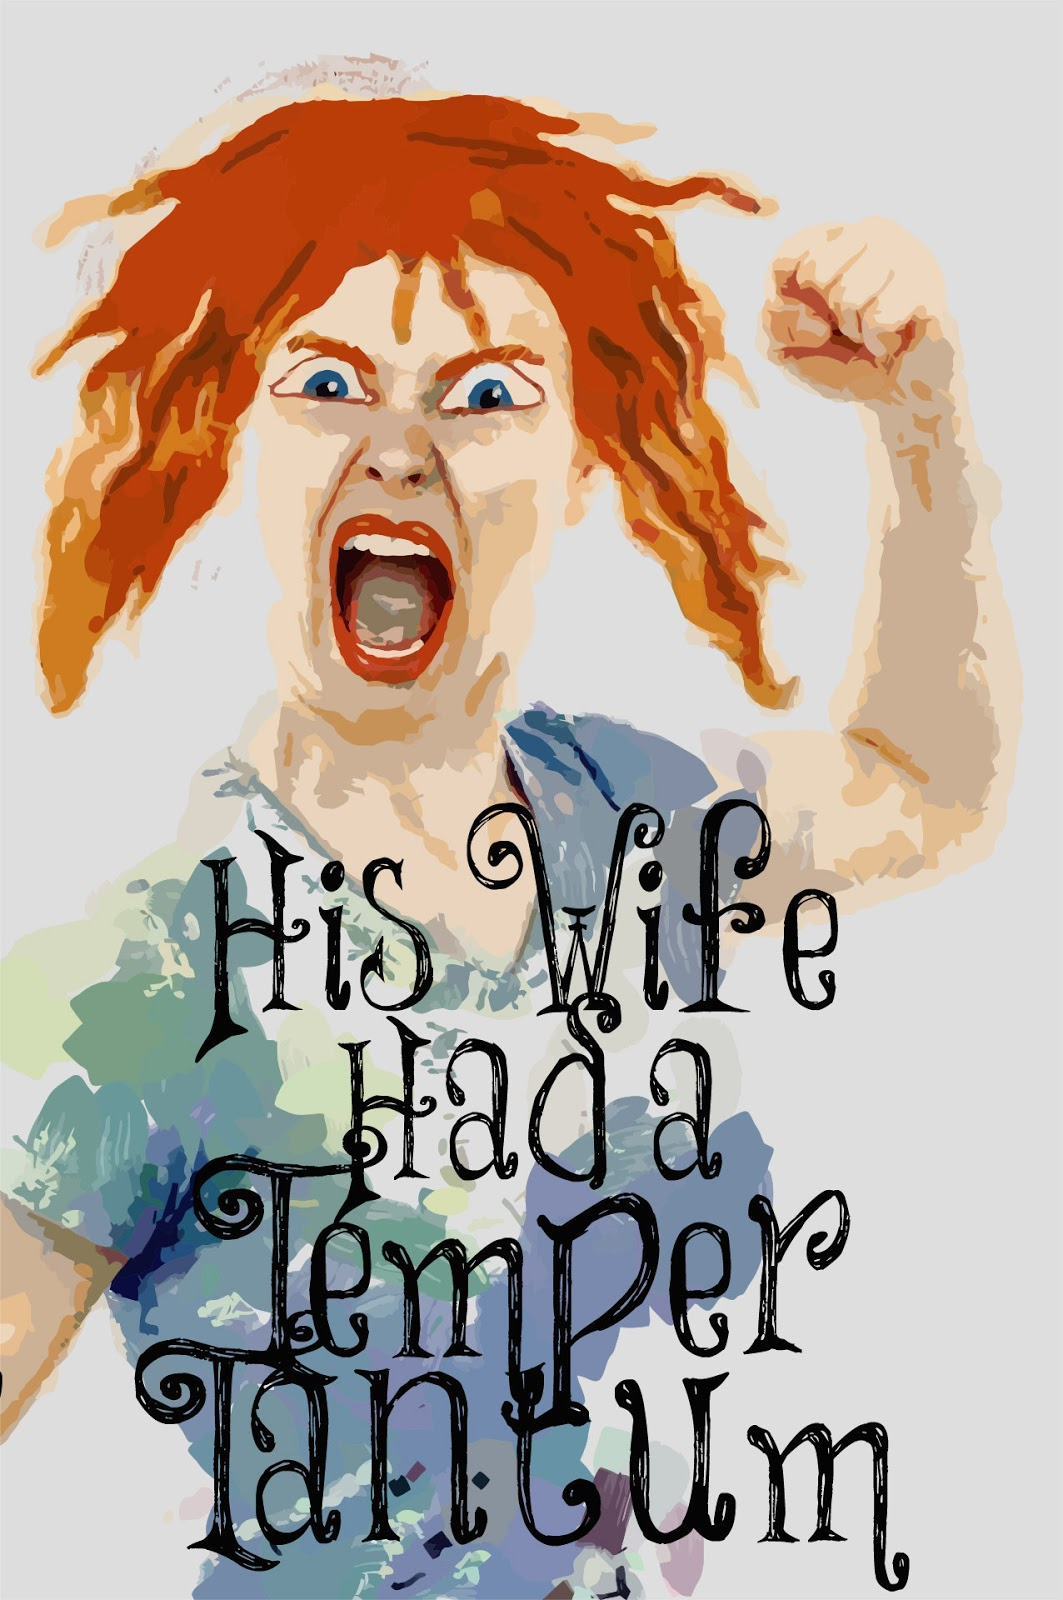 If you want to be healthy - temper